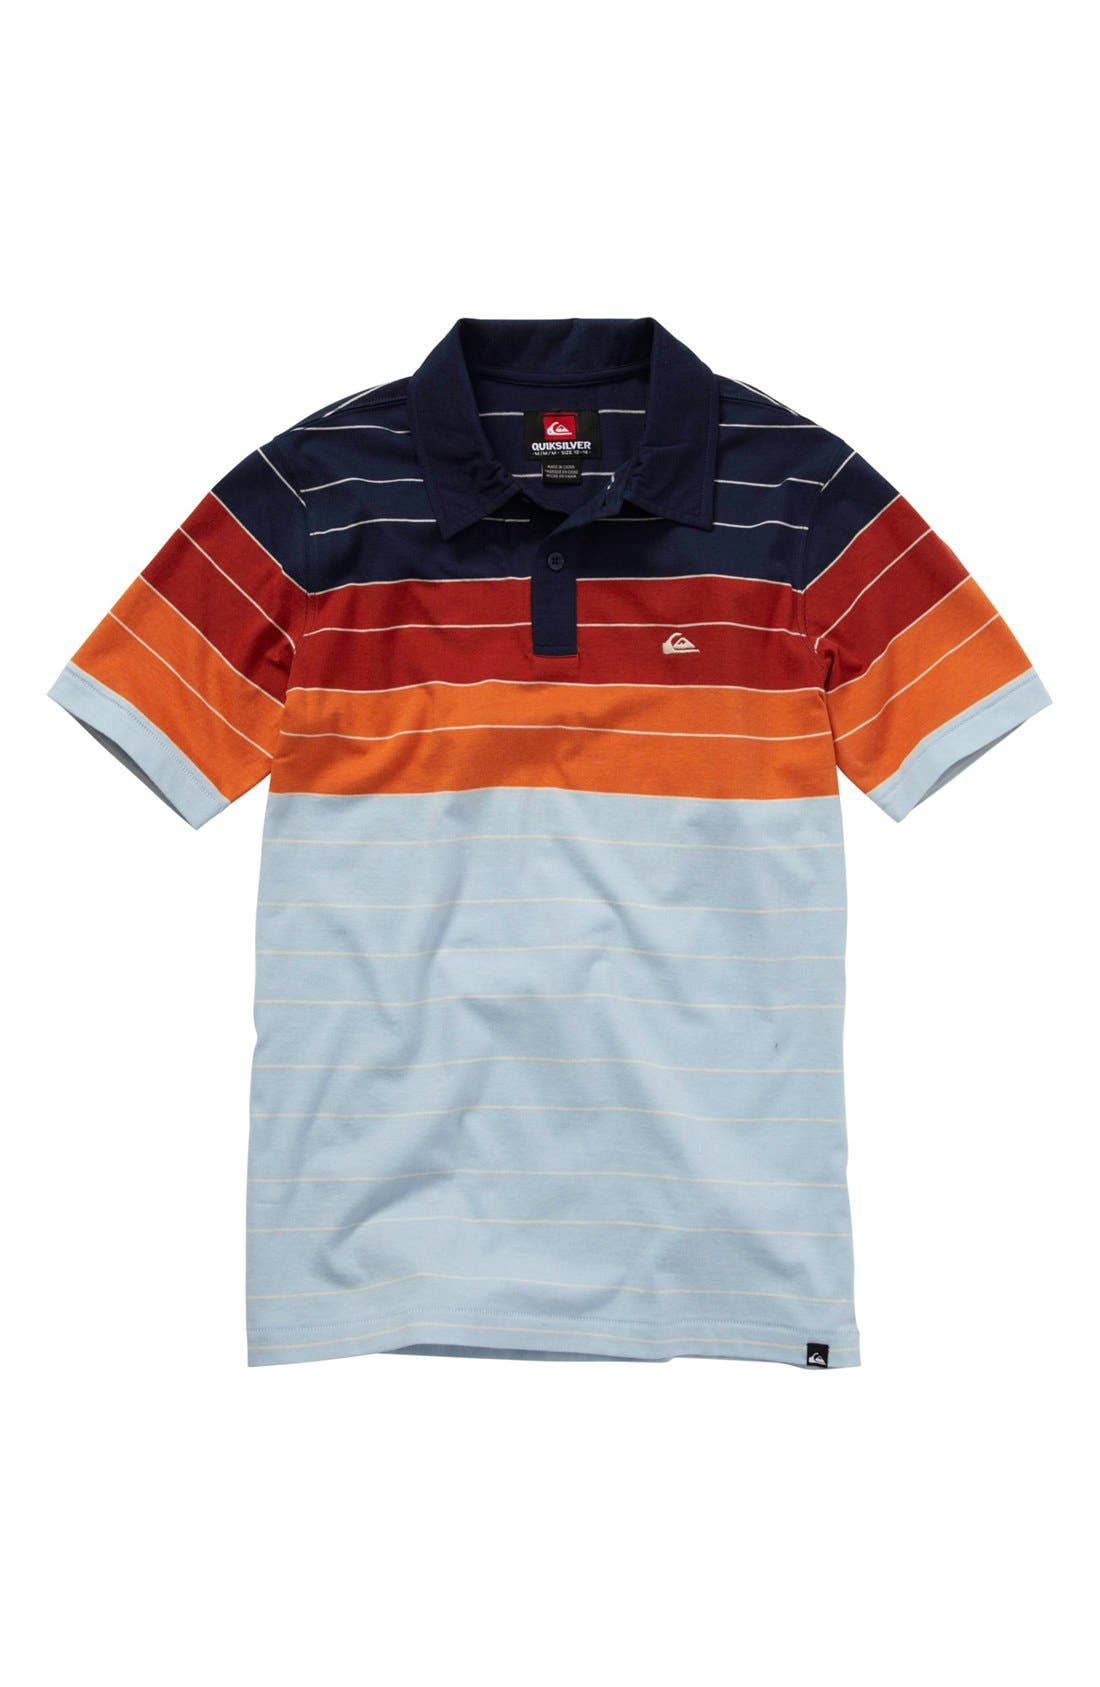 Alternate Image 1 Selected - Quiksilver 'North Side' Polo (Little Boys)